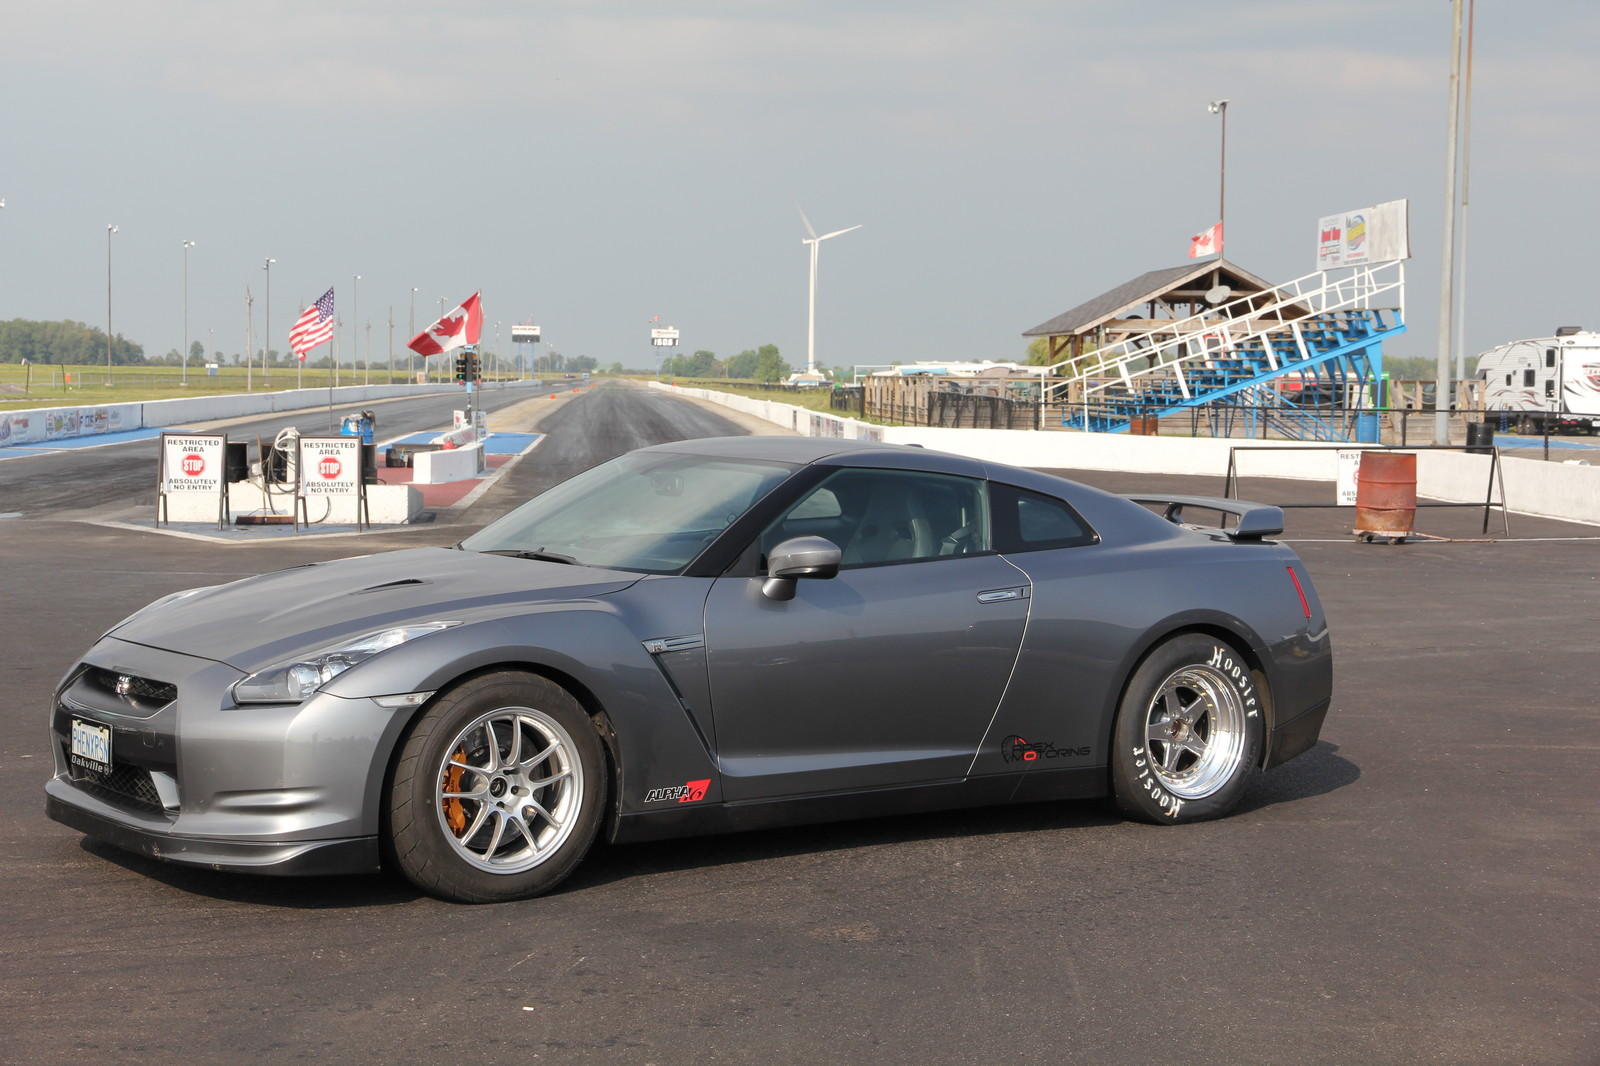 2010 Gun Metal Grey Nissan GT-R Apex Motoring Alpha 16 picture, mods, upgrades